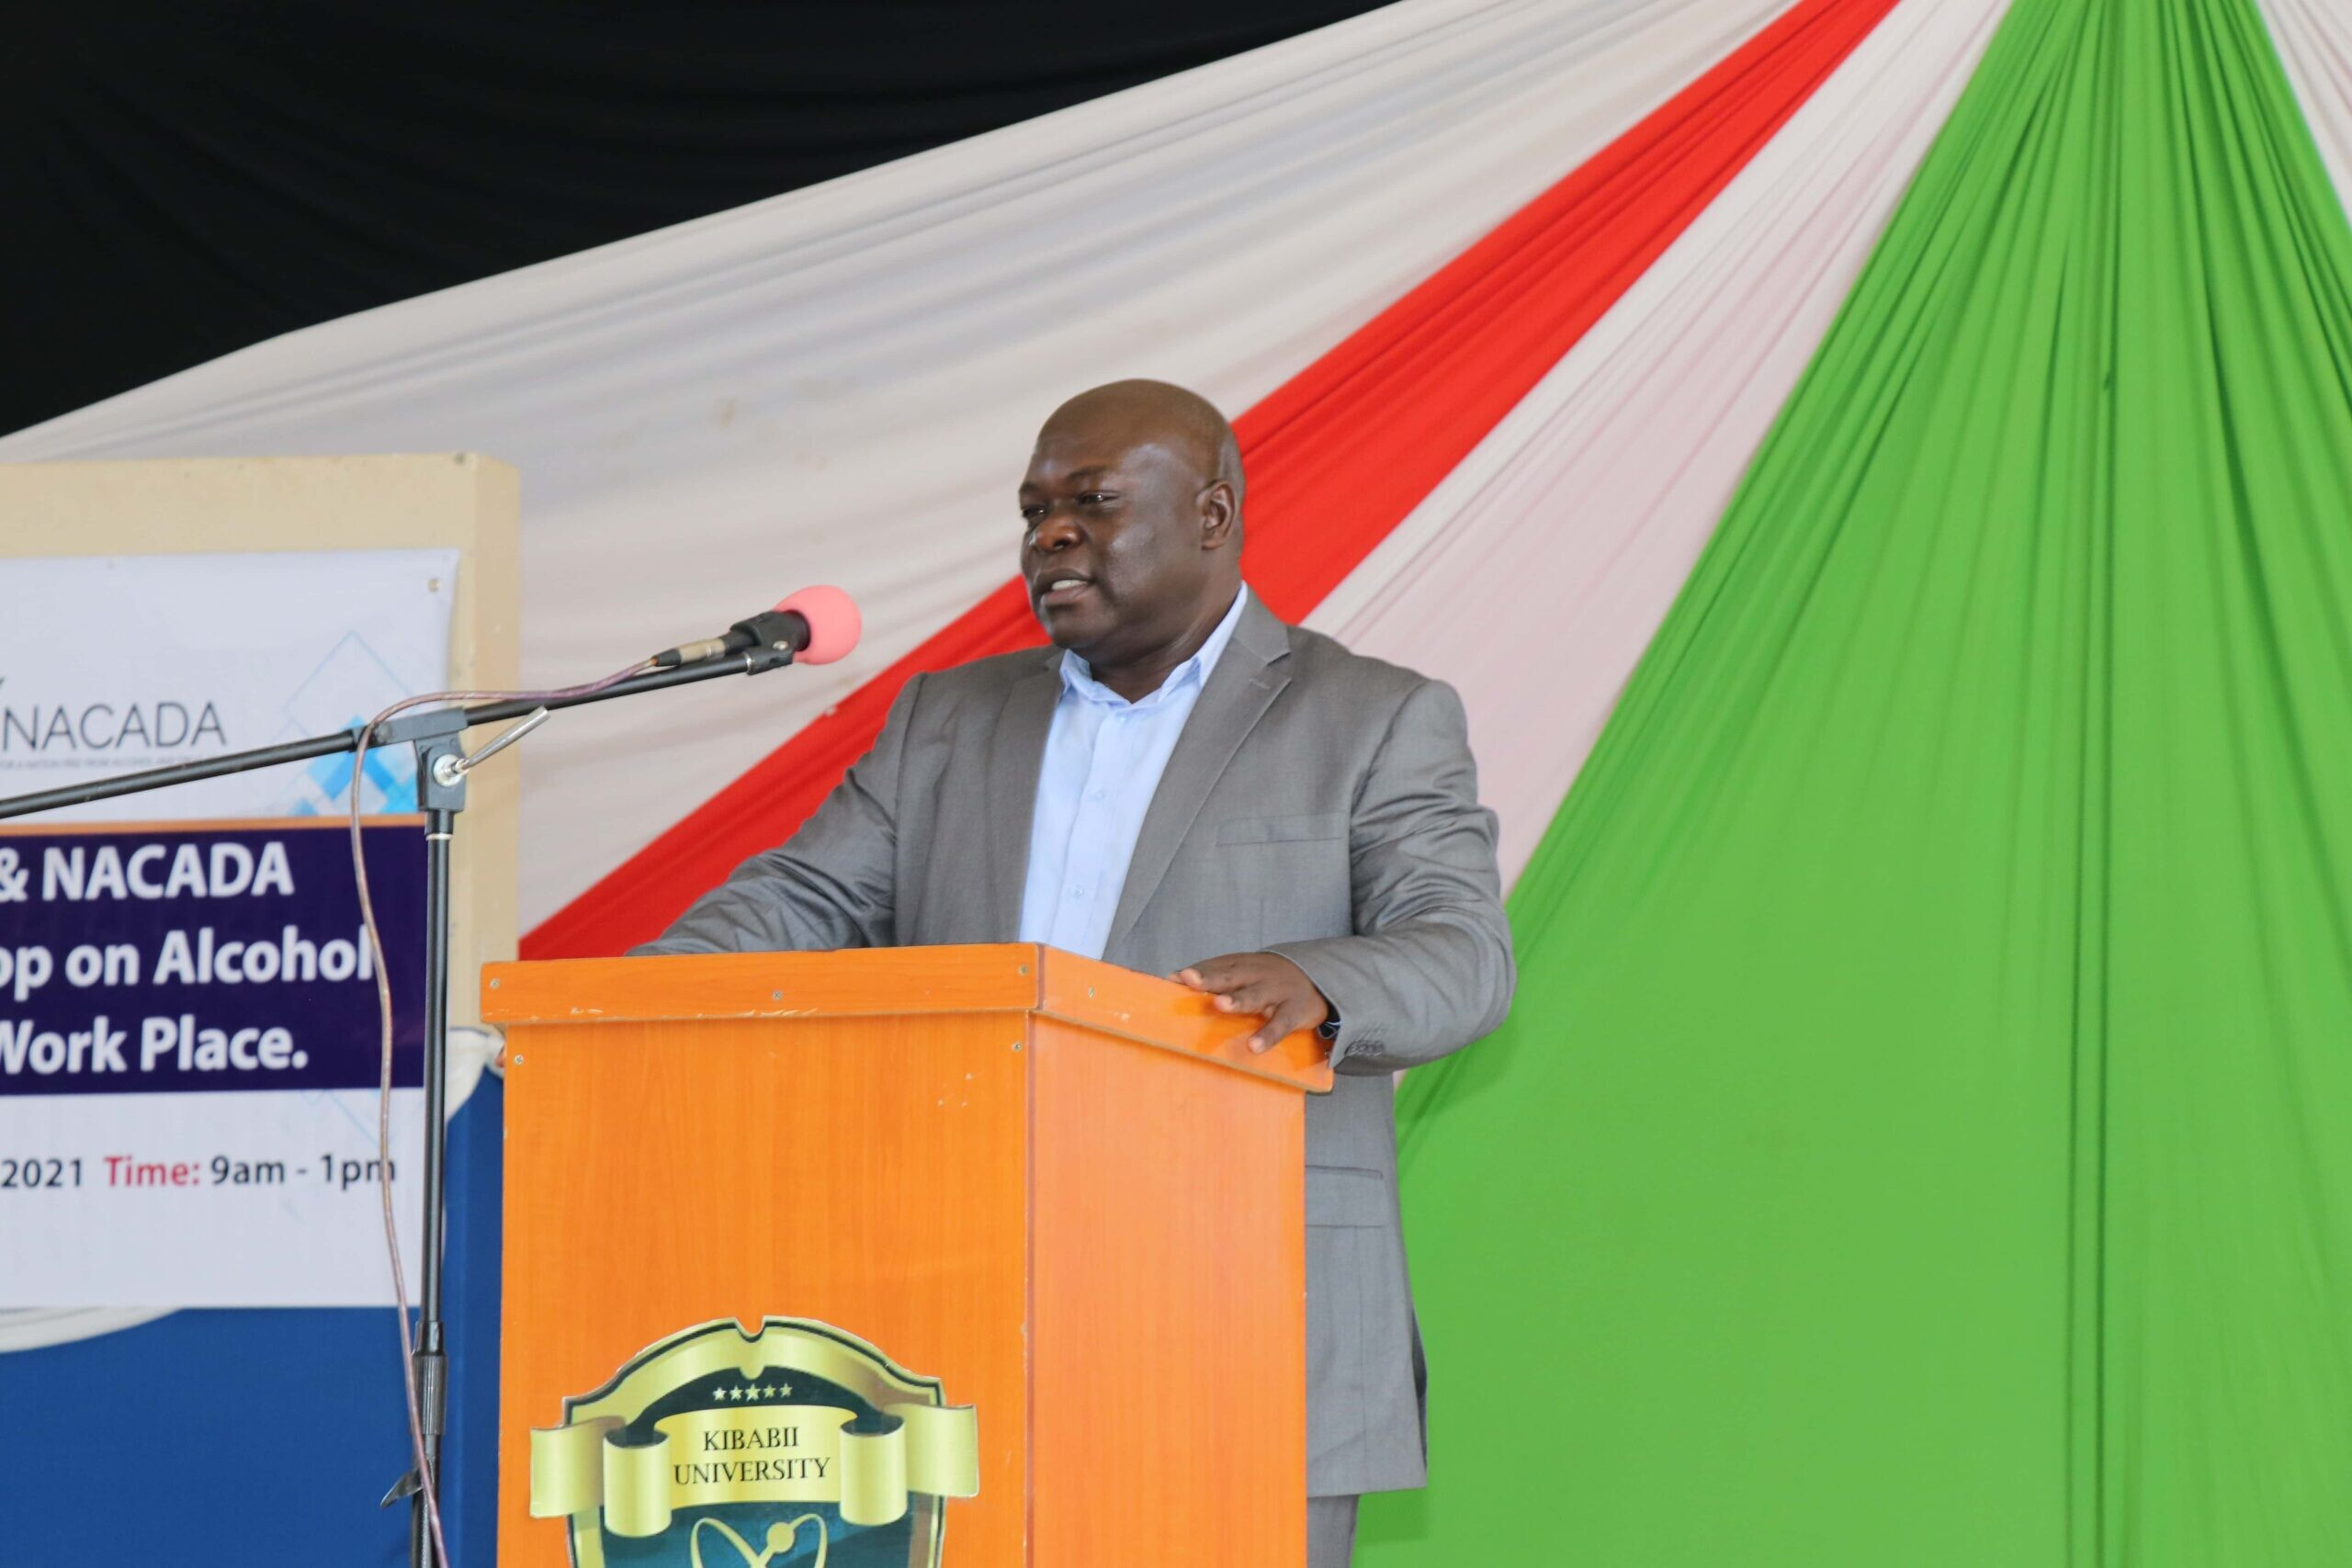 KIBU-Partners-with-NACADA-in-Containing-Alcohol-and-Drug-Abuse_3